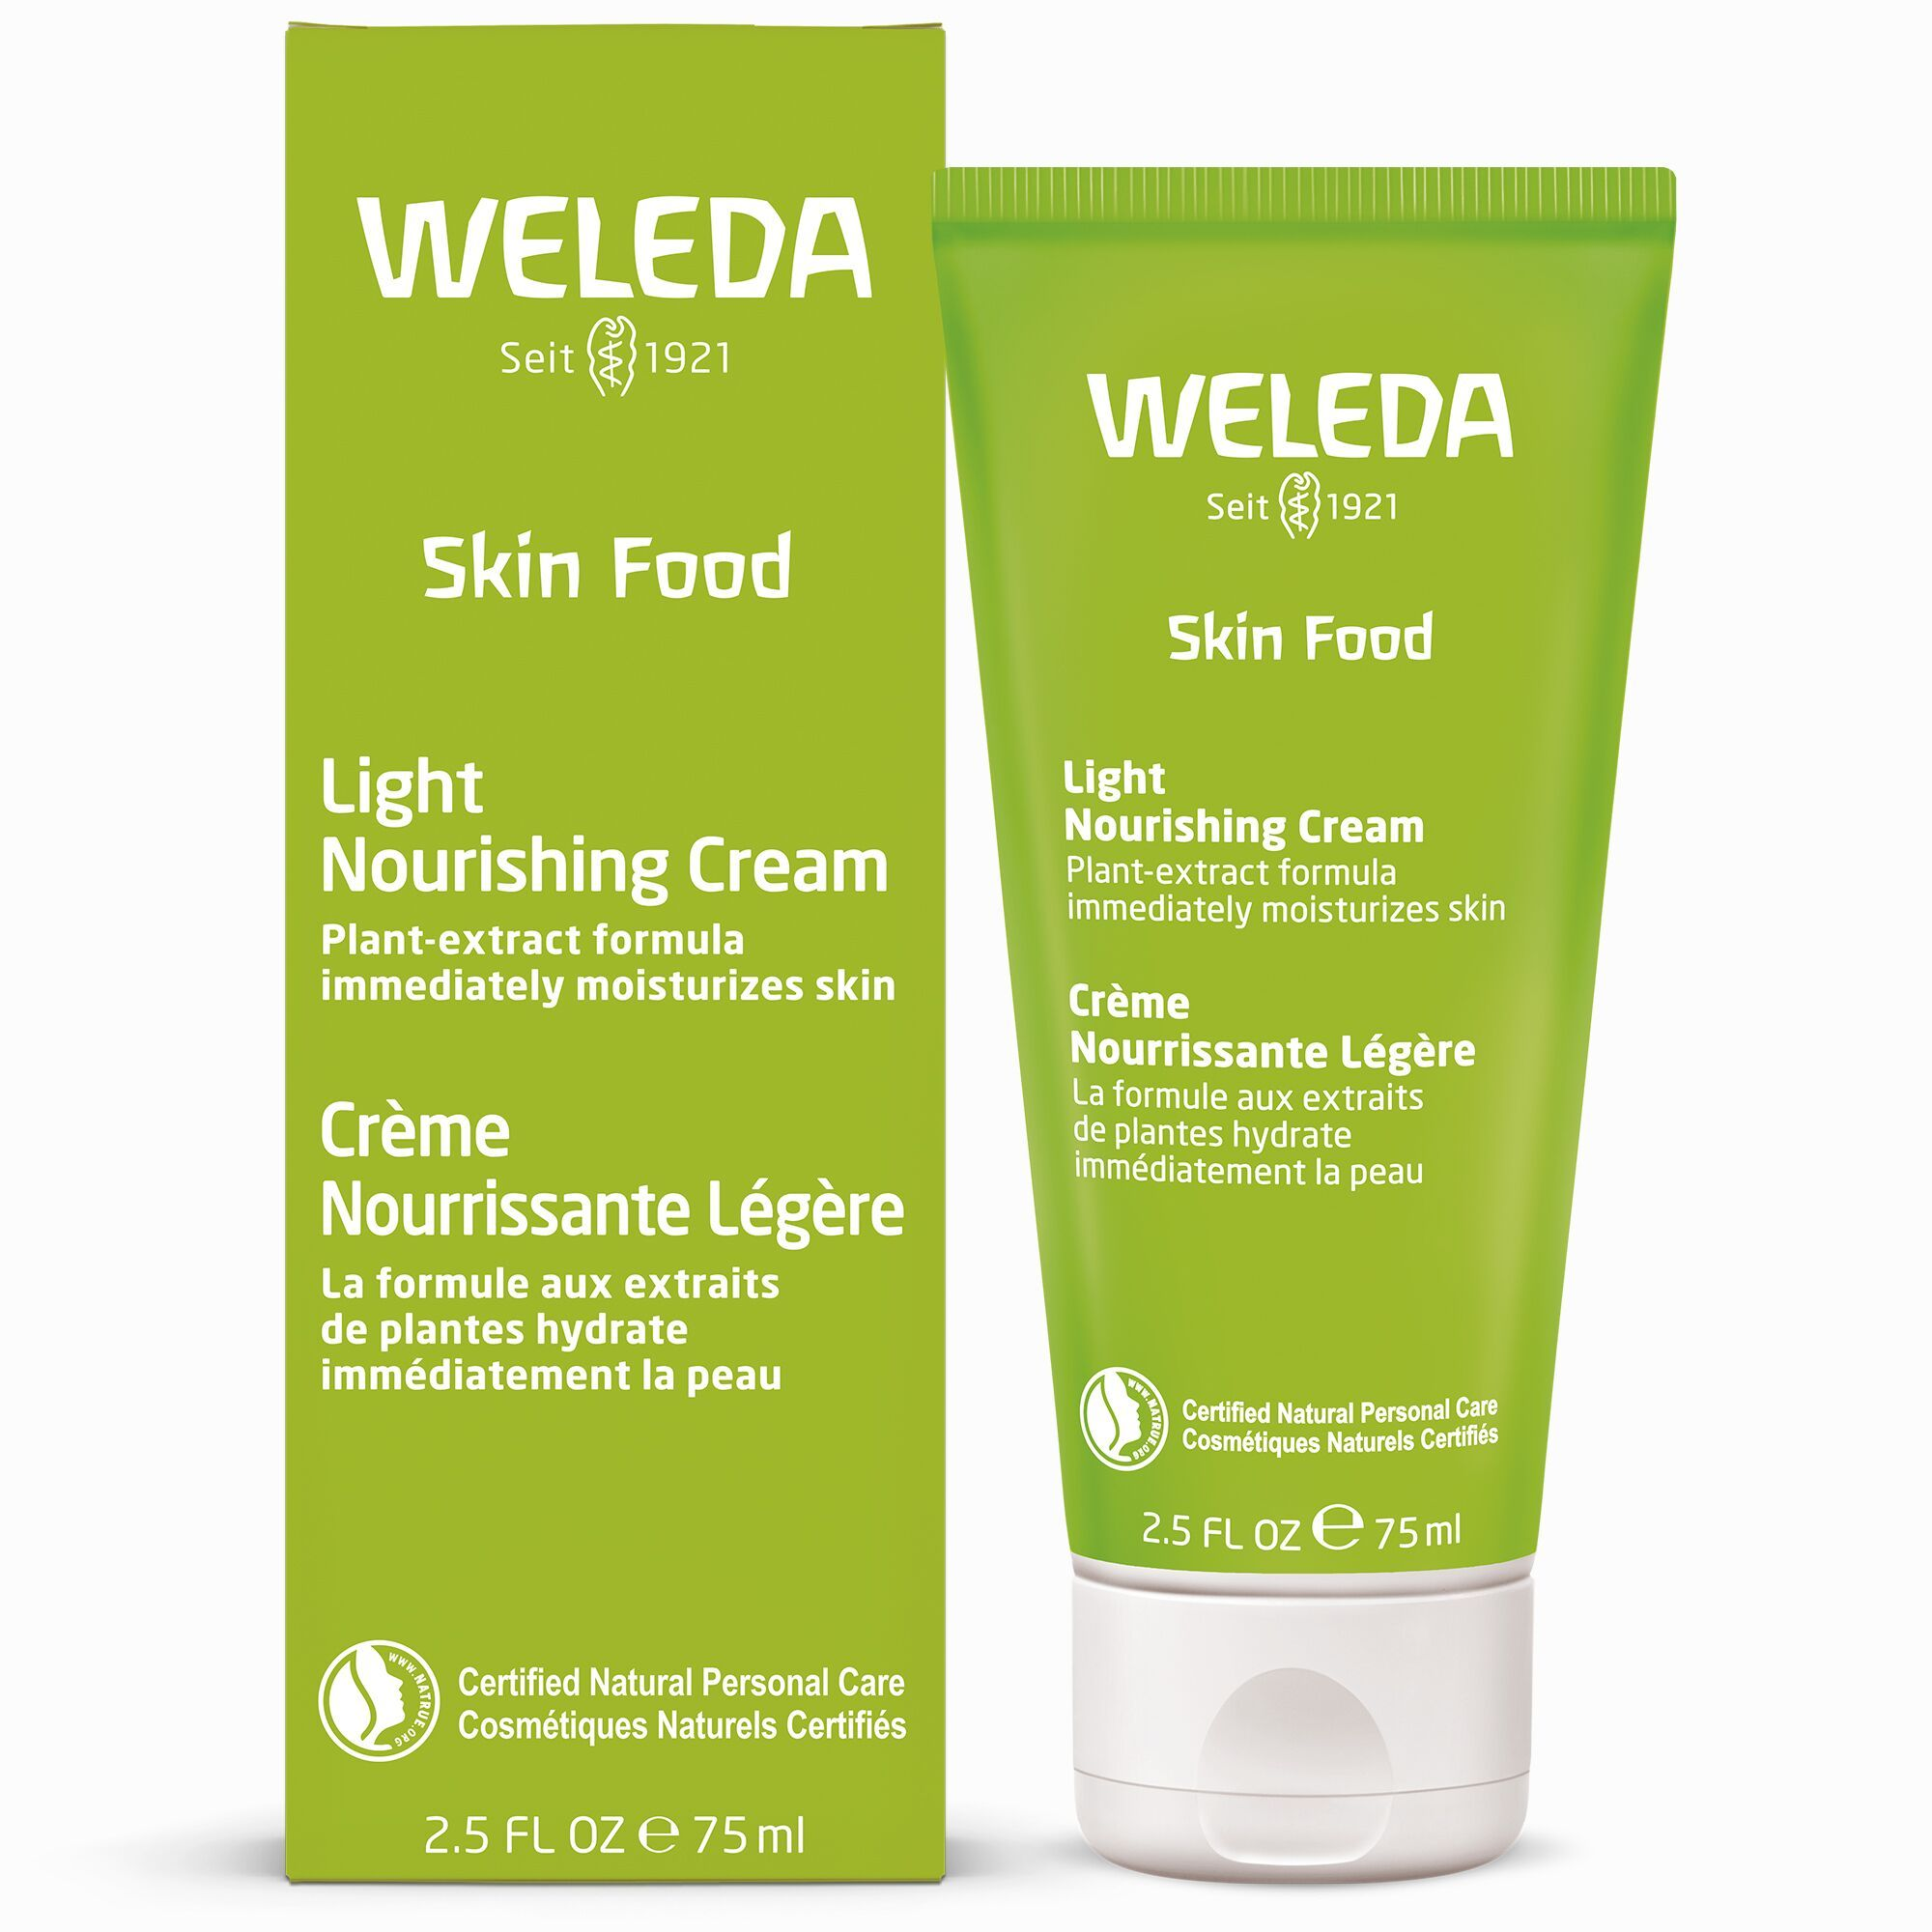 Personal Care - Weleda - Skin Food Light Nourishing Cream, 75mL